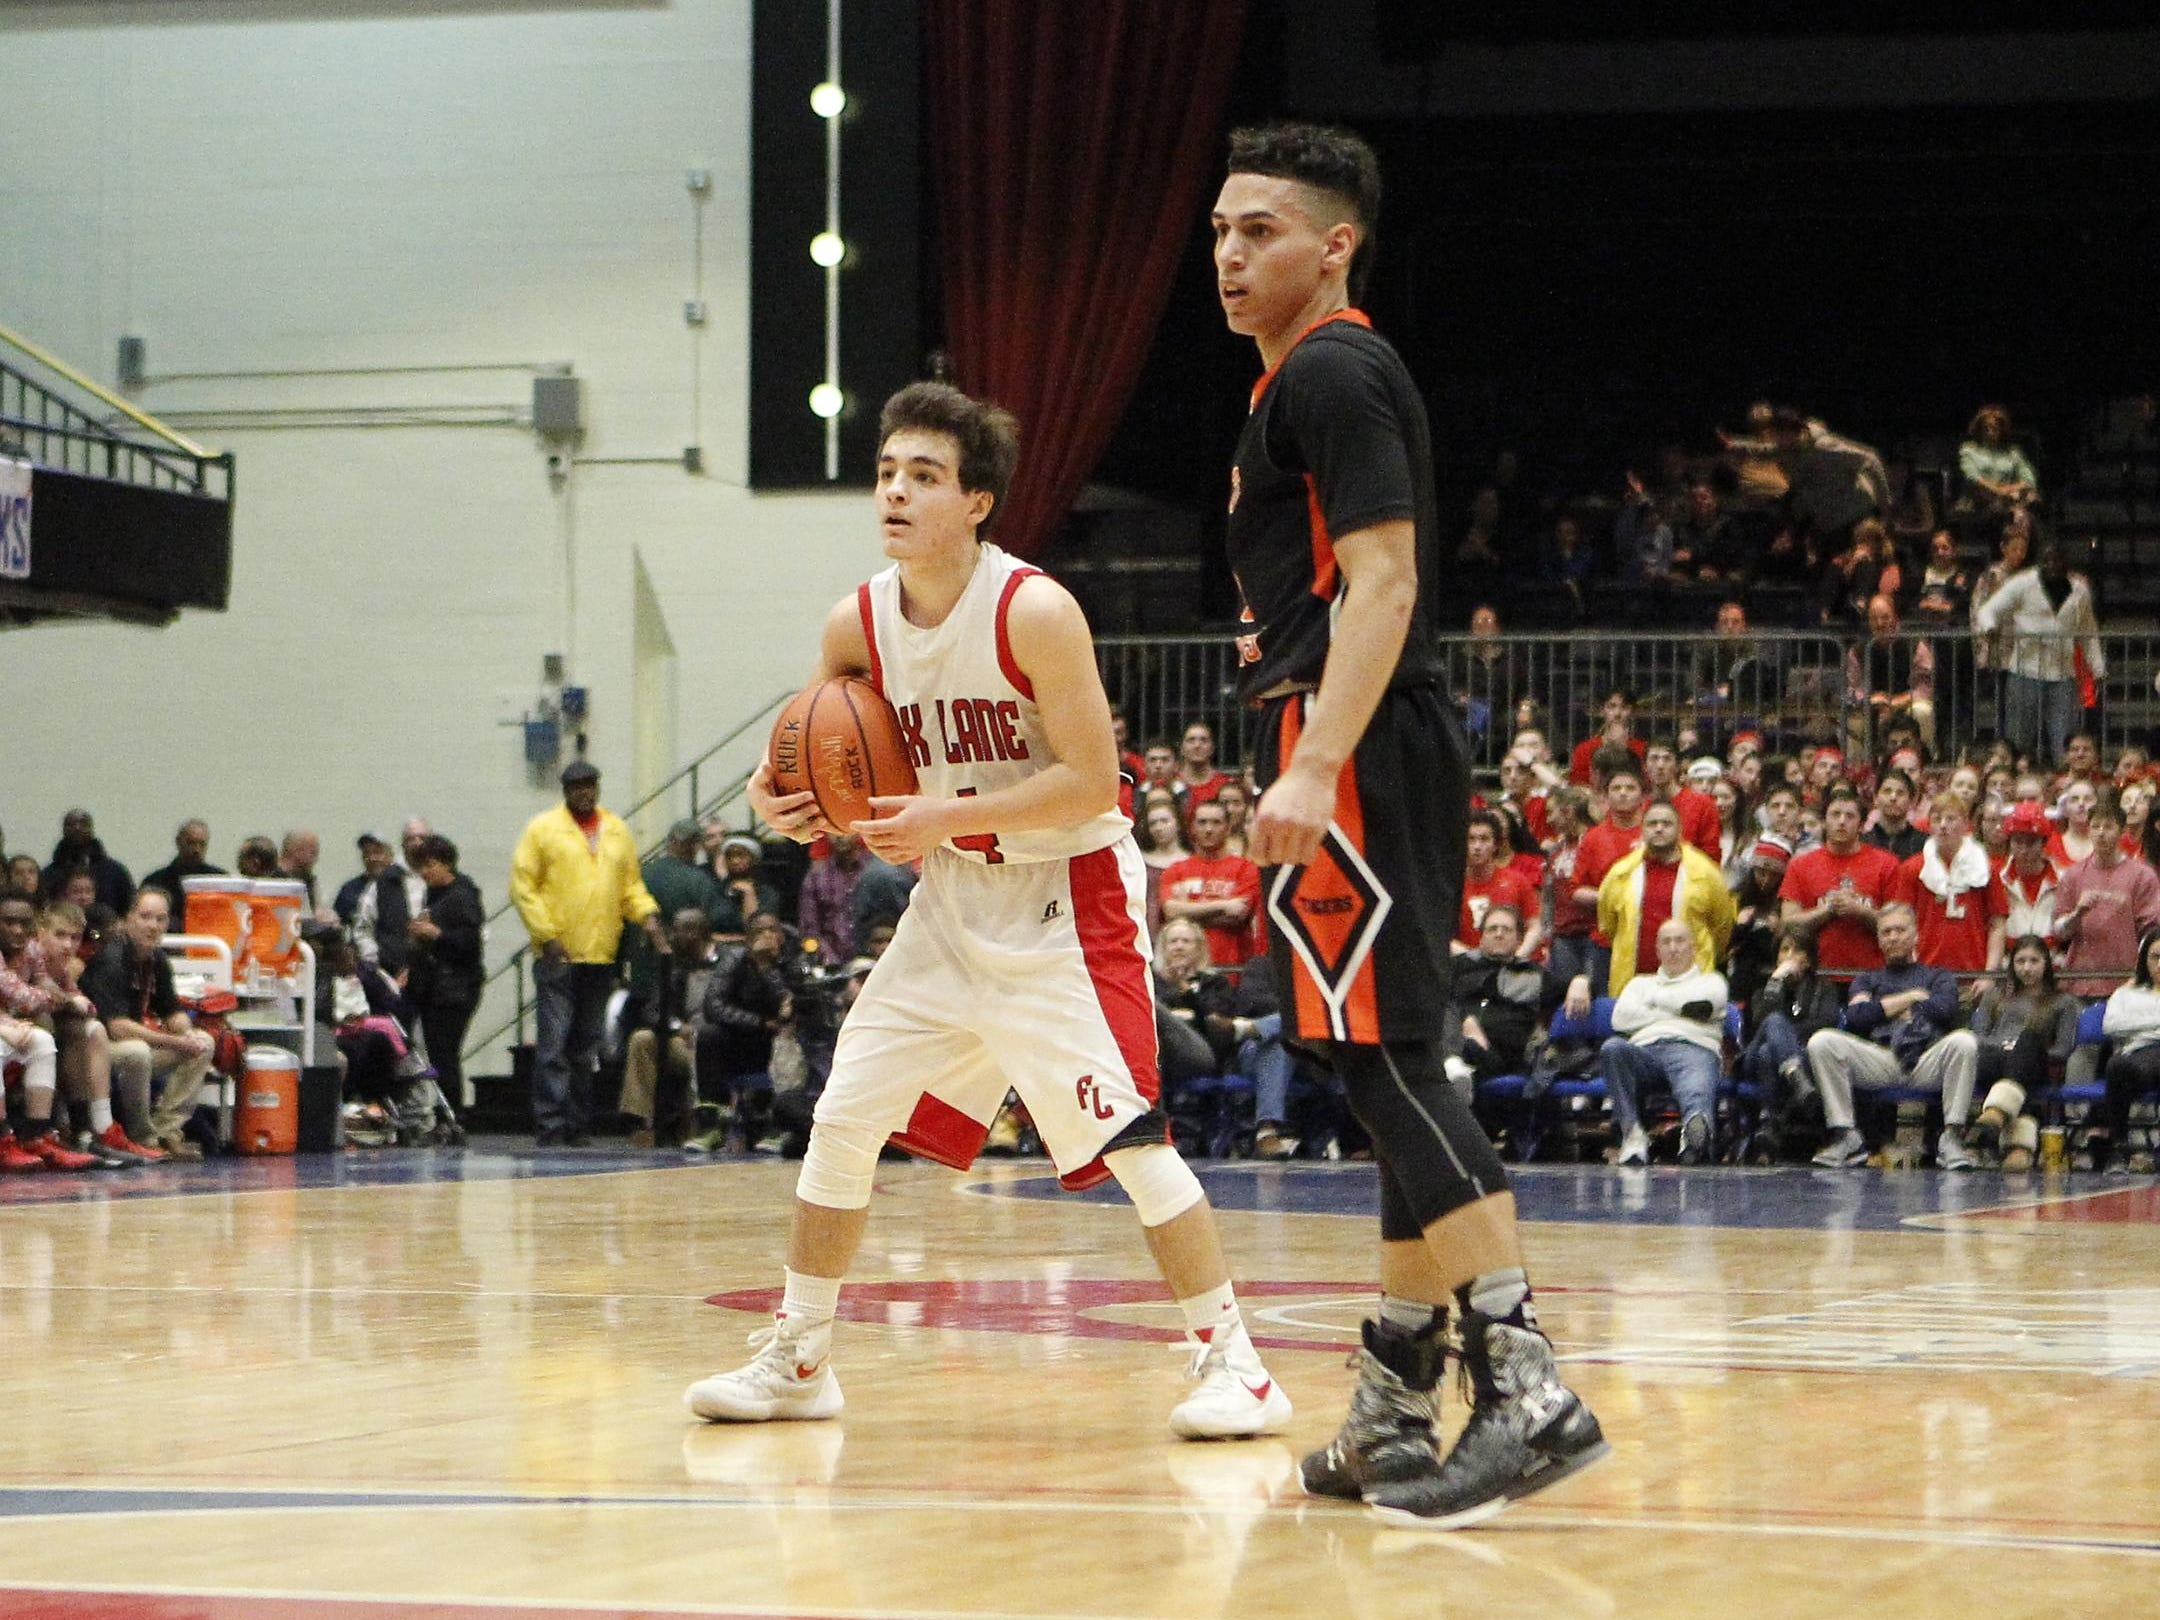 Fox Lane's Emmett Robin (4) holds possession during the boys Class AA semi-final basketball game against White Plains at the County Center in White Plains on Friday, February 26, 2016.